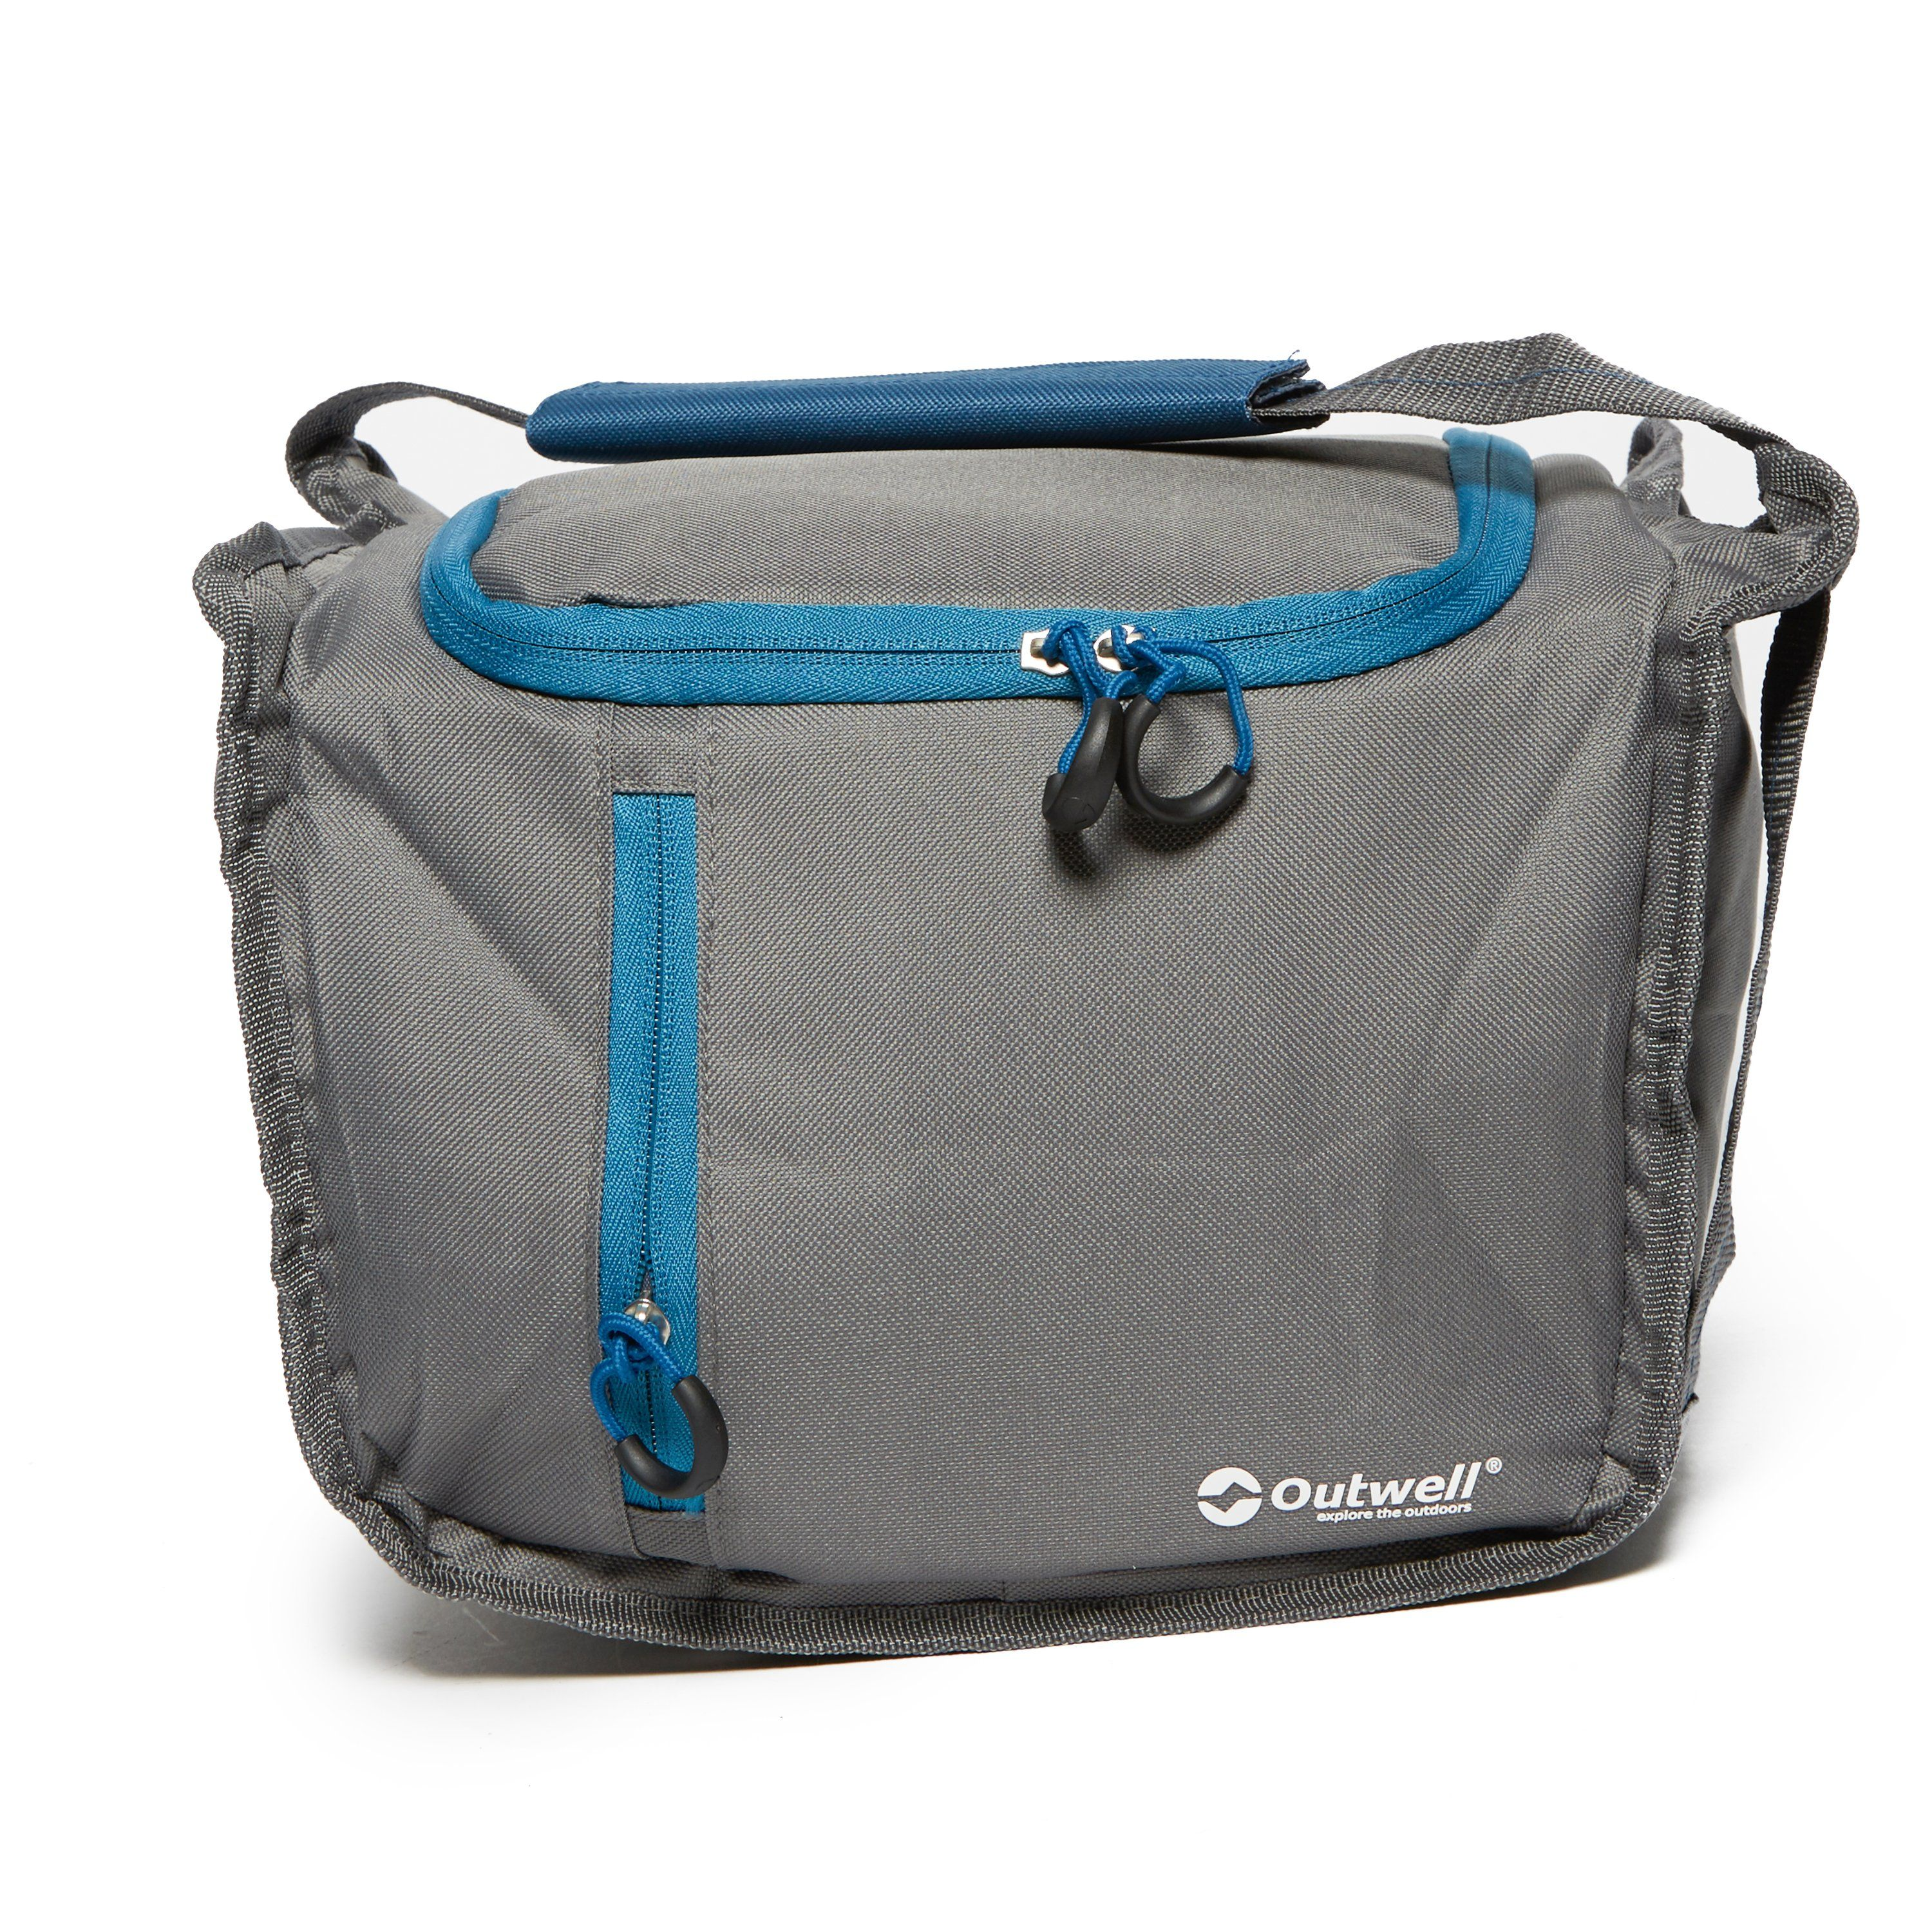 OUTWELL Cormorant Cool Bag